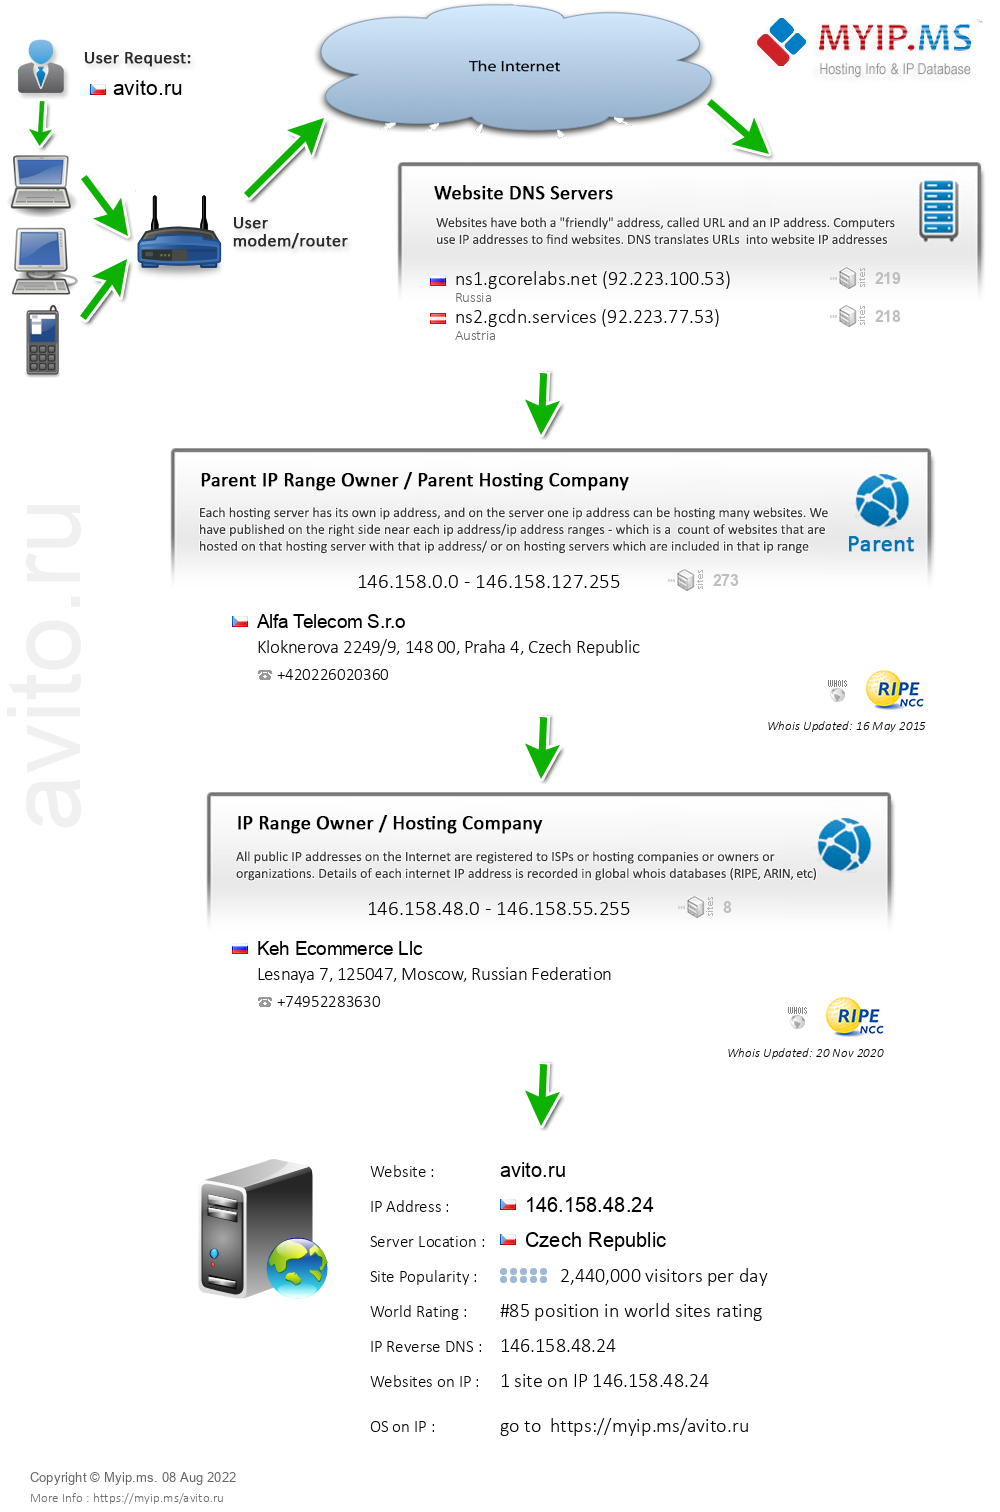 Avito.ru - Website Hosting Visual IP Diagram